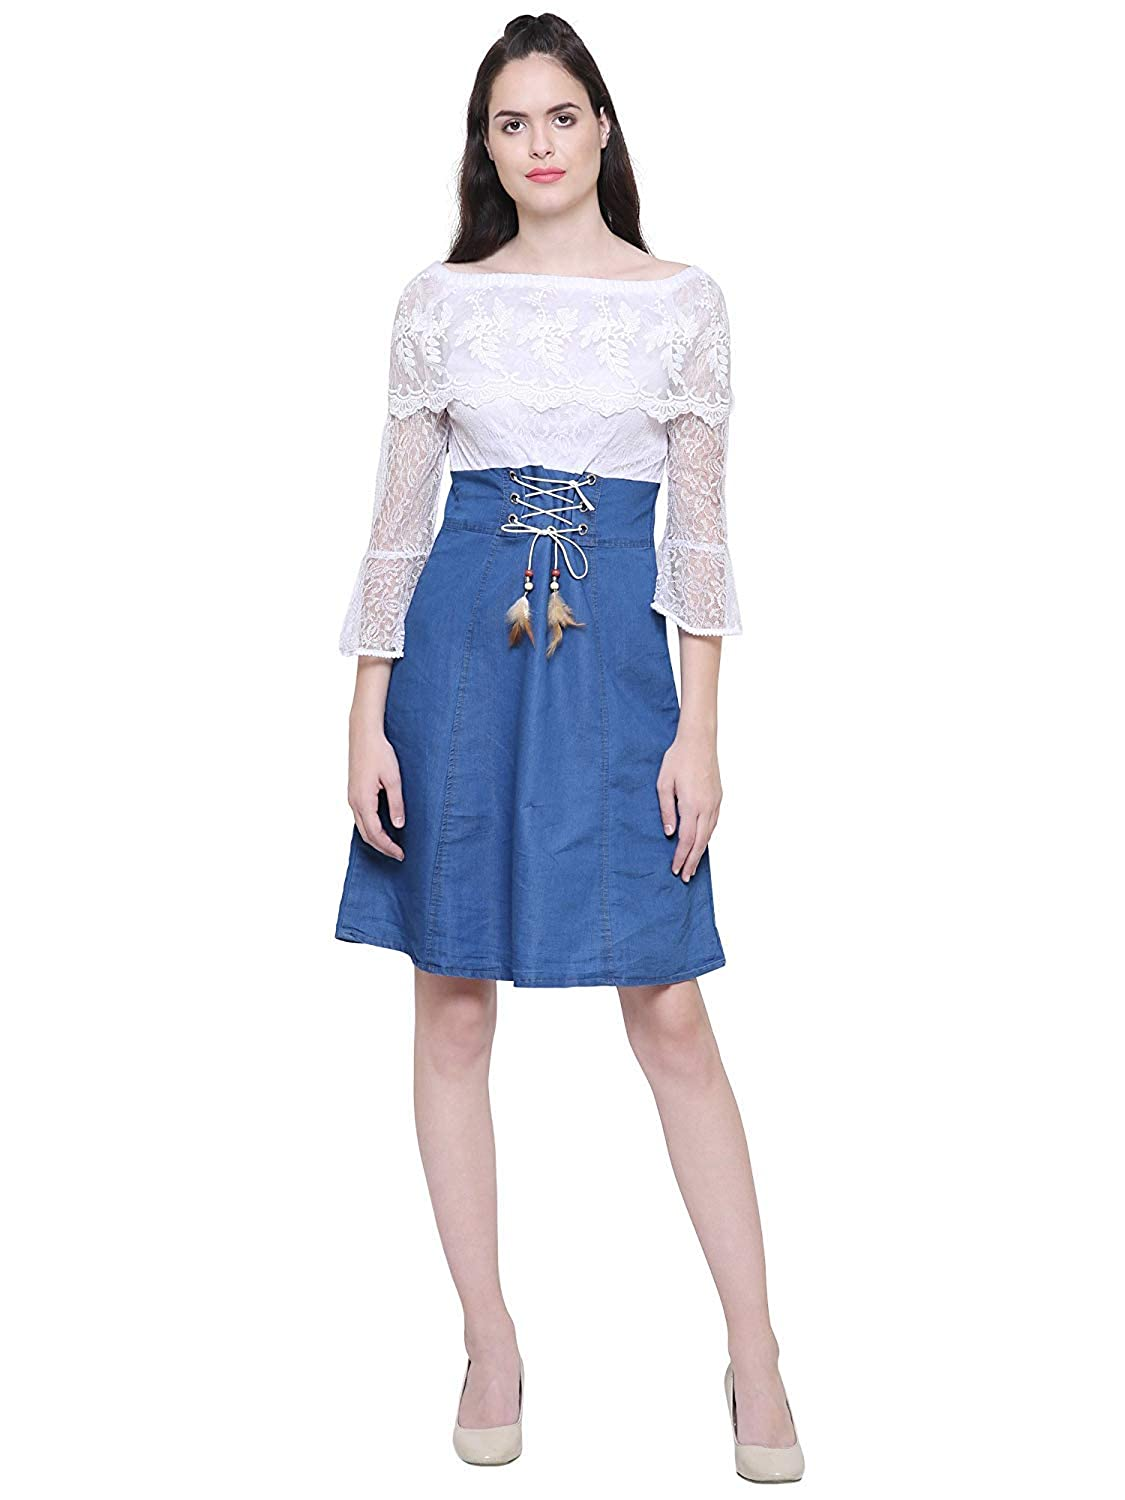 C.Cozami Women s Solid Casual Denim Dark Blue Off Shoulder Dress   Amazon.in  Clothing   Accessories deb6cf0a2